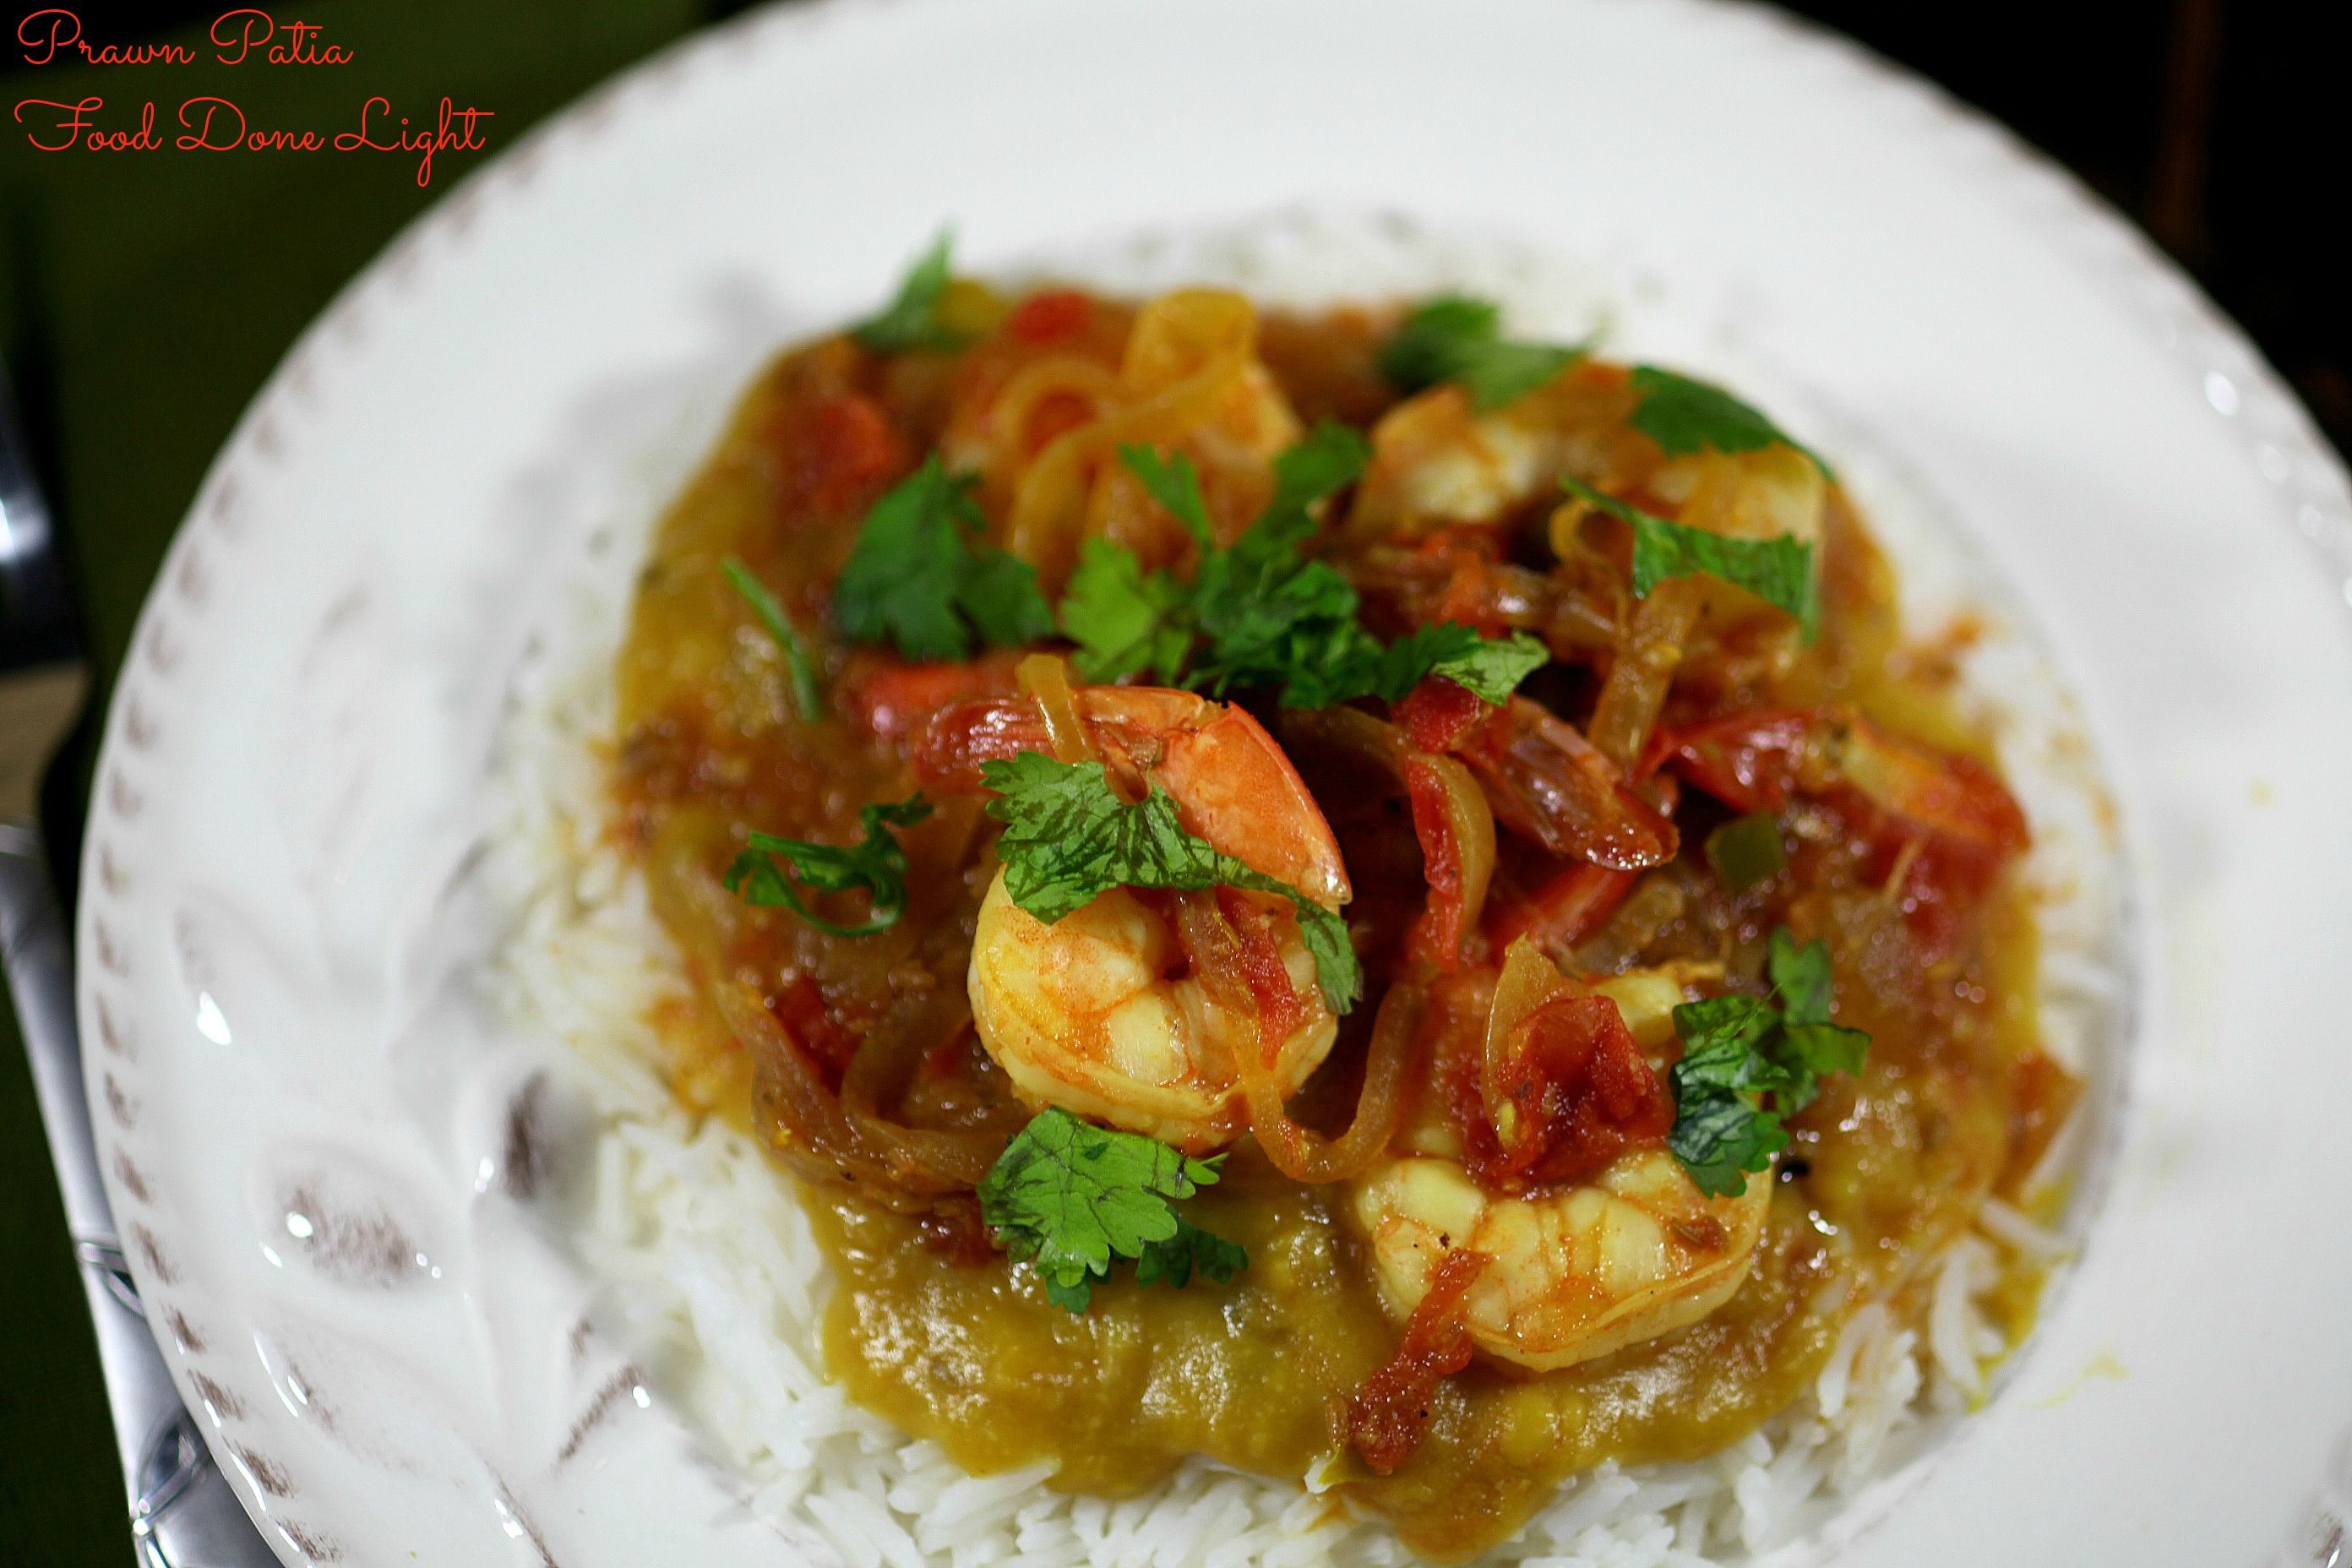 Prawn Patia is Parsi Shrimp curry that is easy to make at home. Serve this healthy dinner and enjoy some Indian food at home. Time to make some magic.  Throw a little garlic, ginger, some chiles, a dash of cumin seeds and turmeric and a splash of vinegar into a spice grinder and whiz away. …